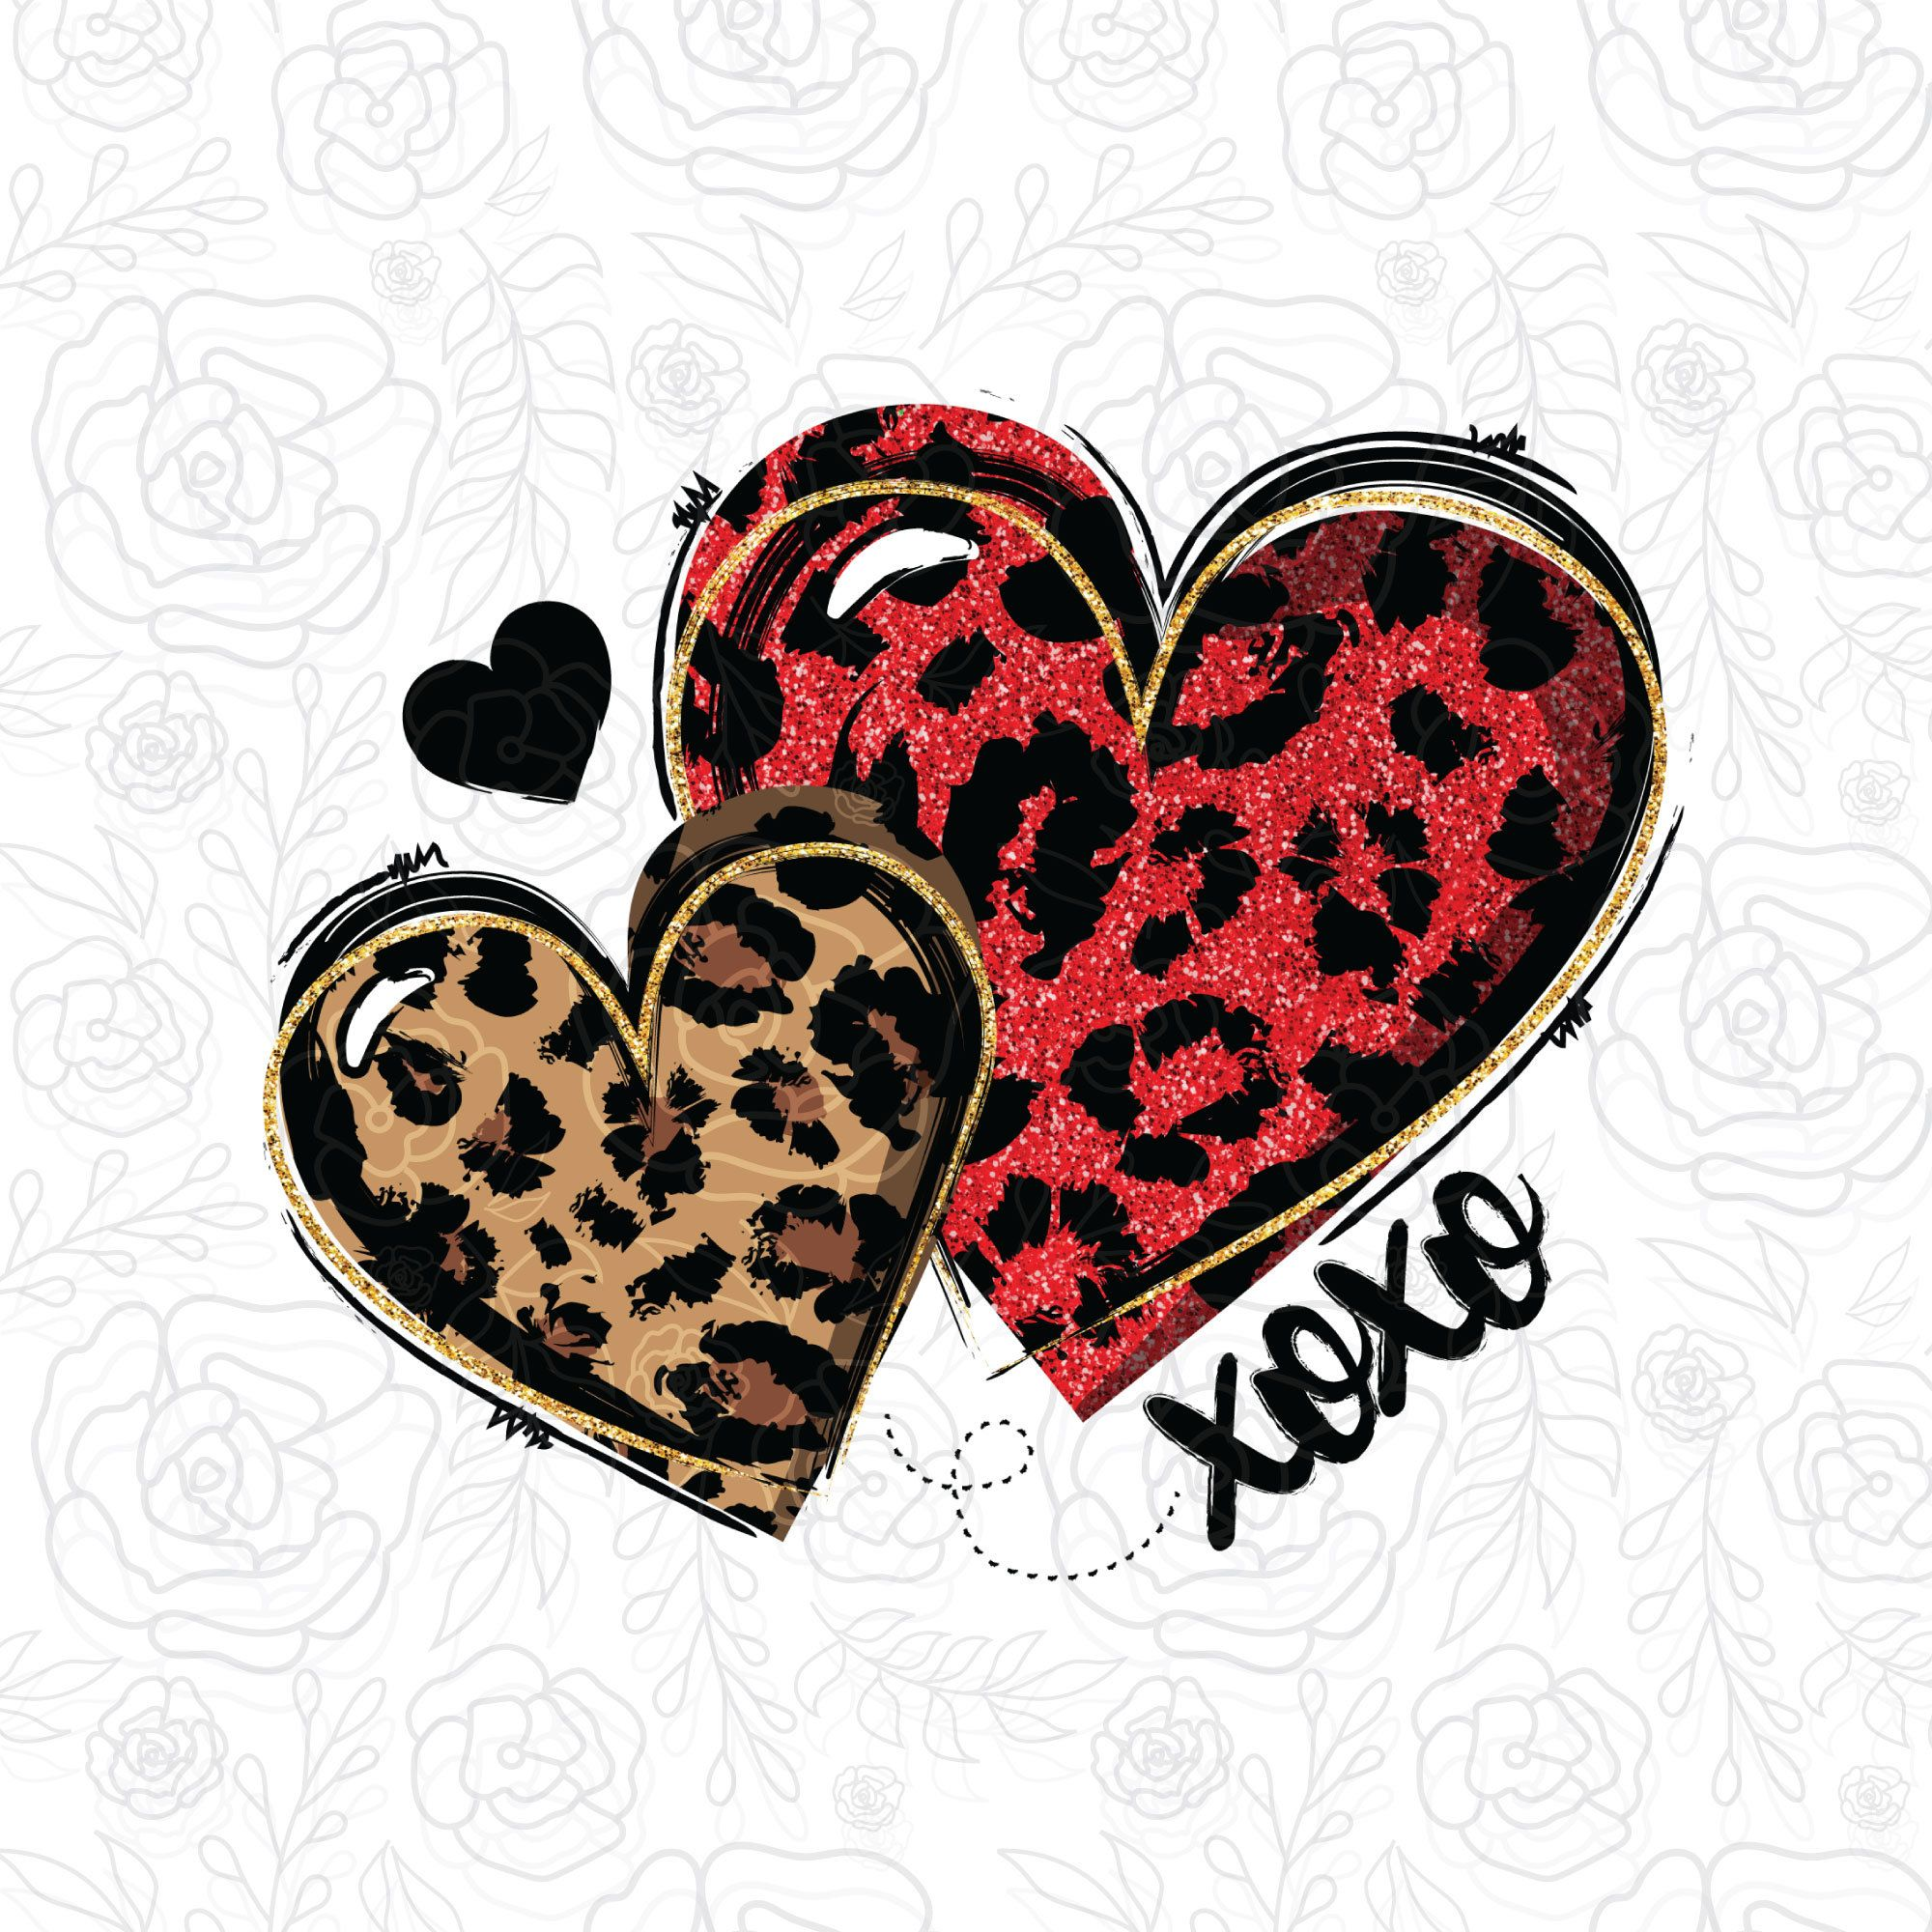 Valentines Day Hearts Sublimation Leopard Hearts Png Valentine S Day Glitter Hearts Leopard Love Clipart Digital Download Valentines Day Hearts Valentines Valentine Images